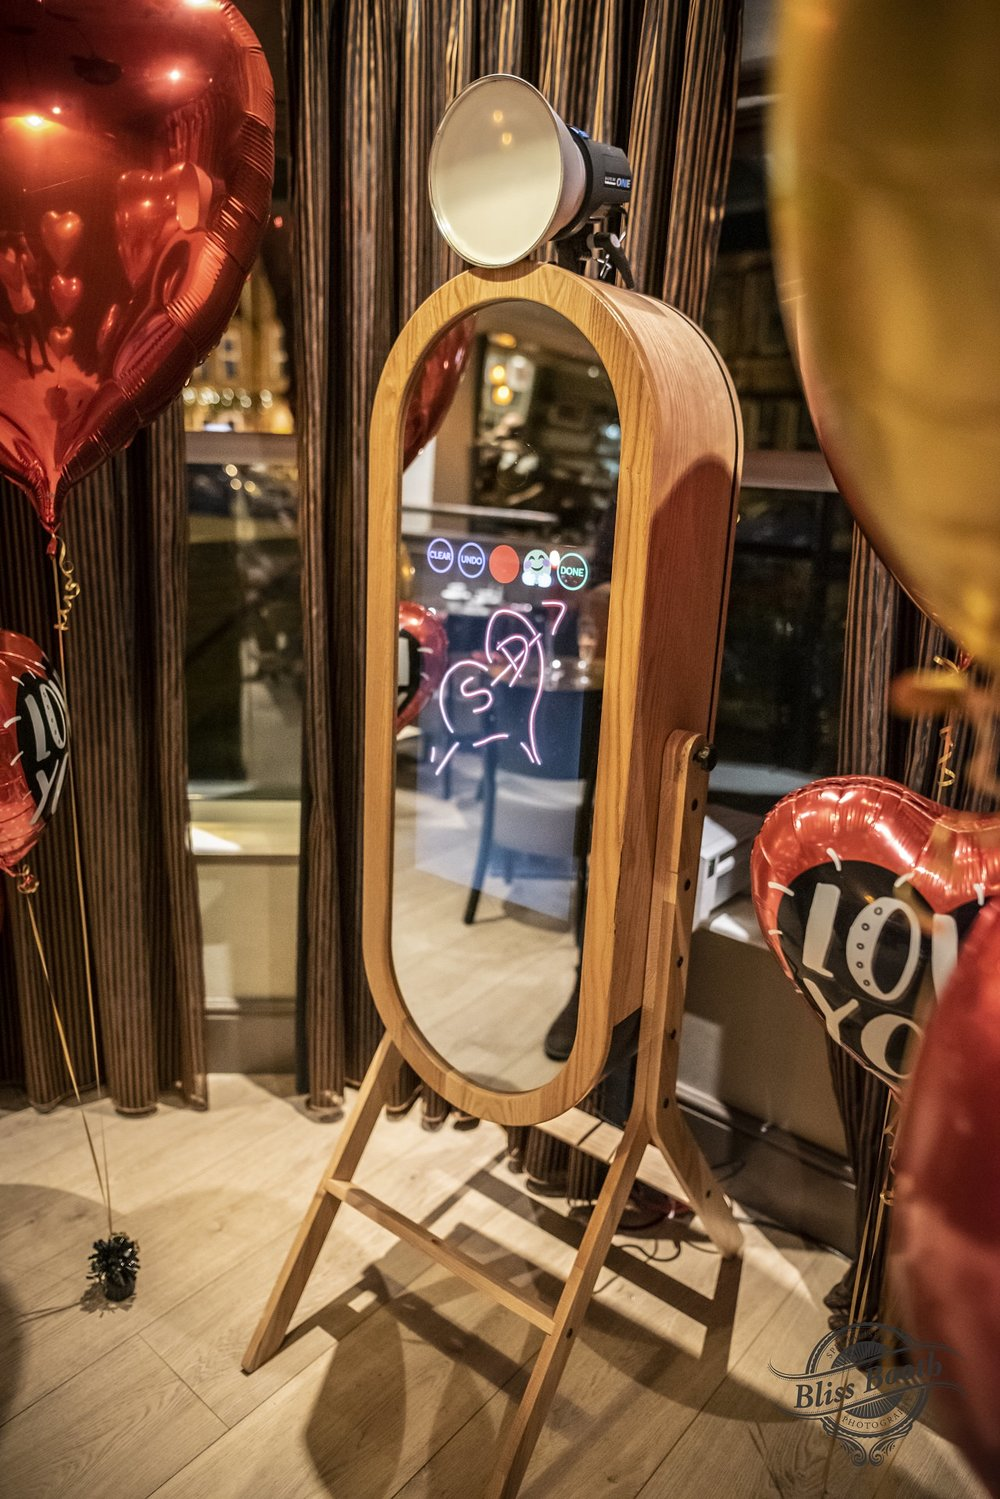 Retro Mirror Photo Booth Hire - More Info